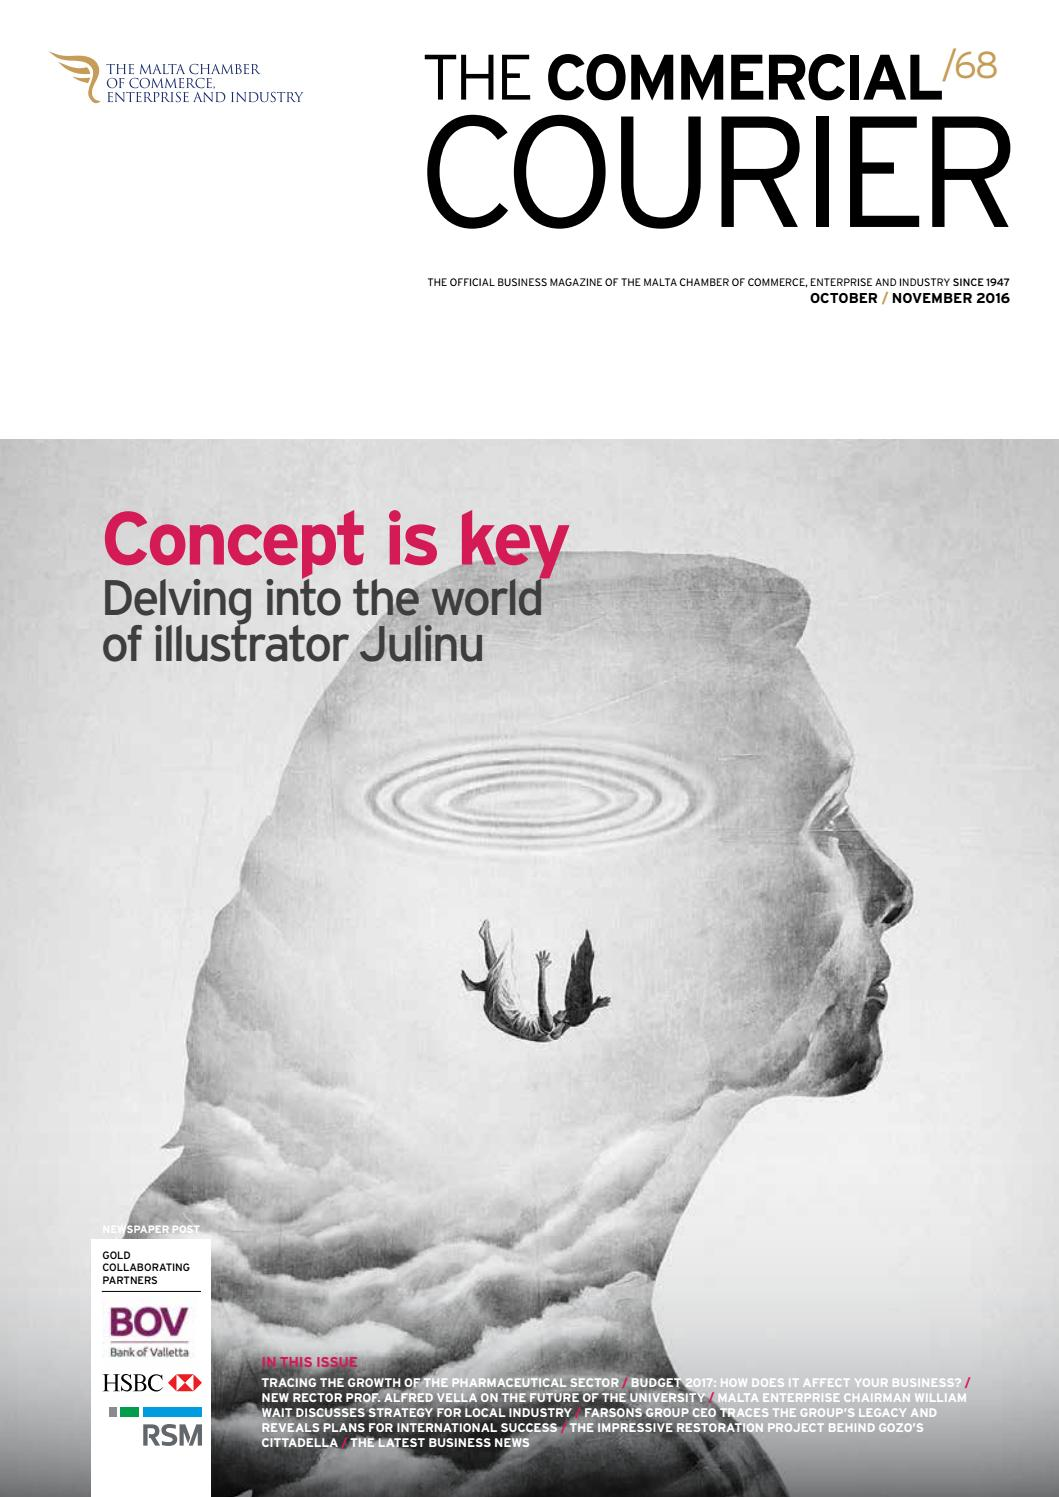 The Commercial Courier October/November 2016 by Content